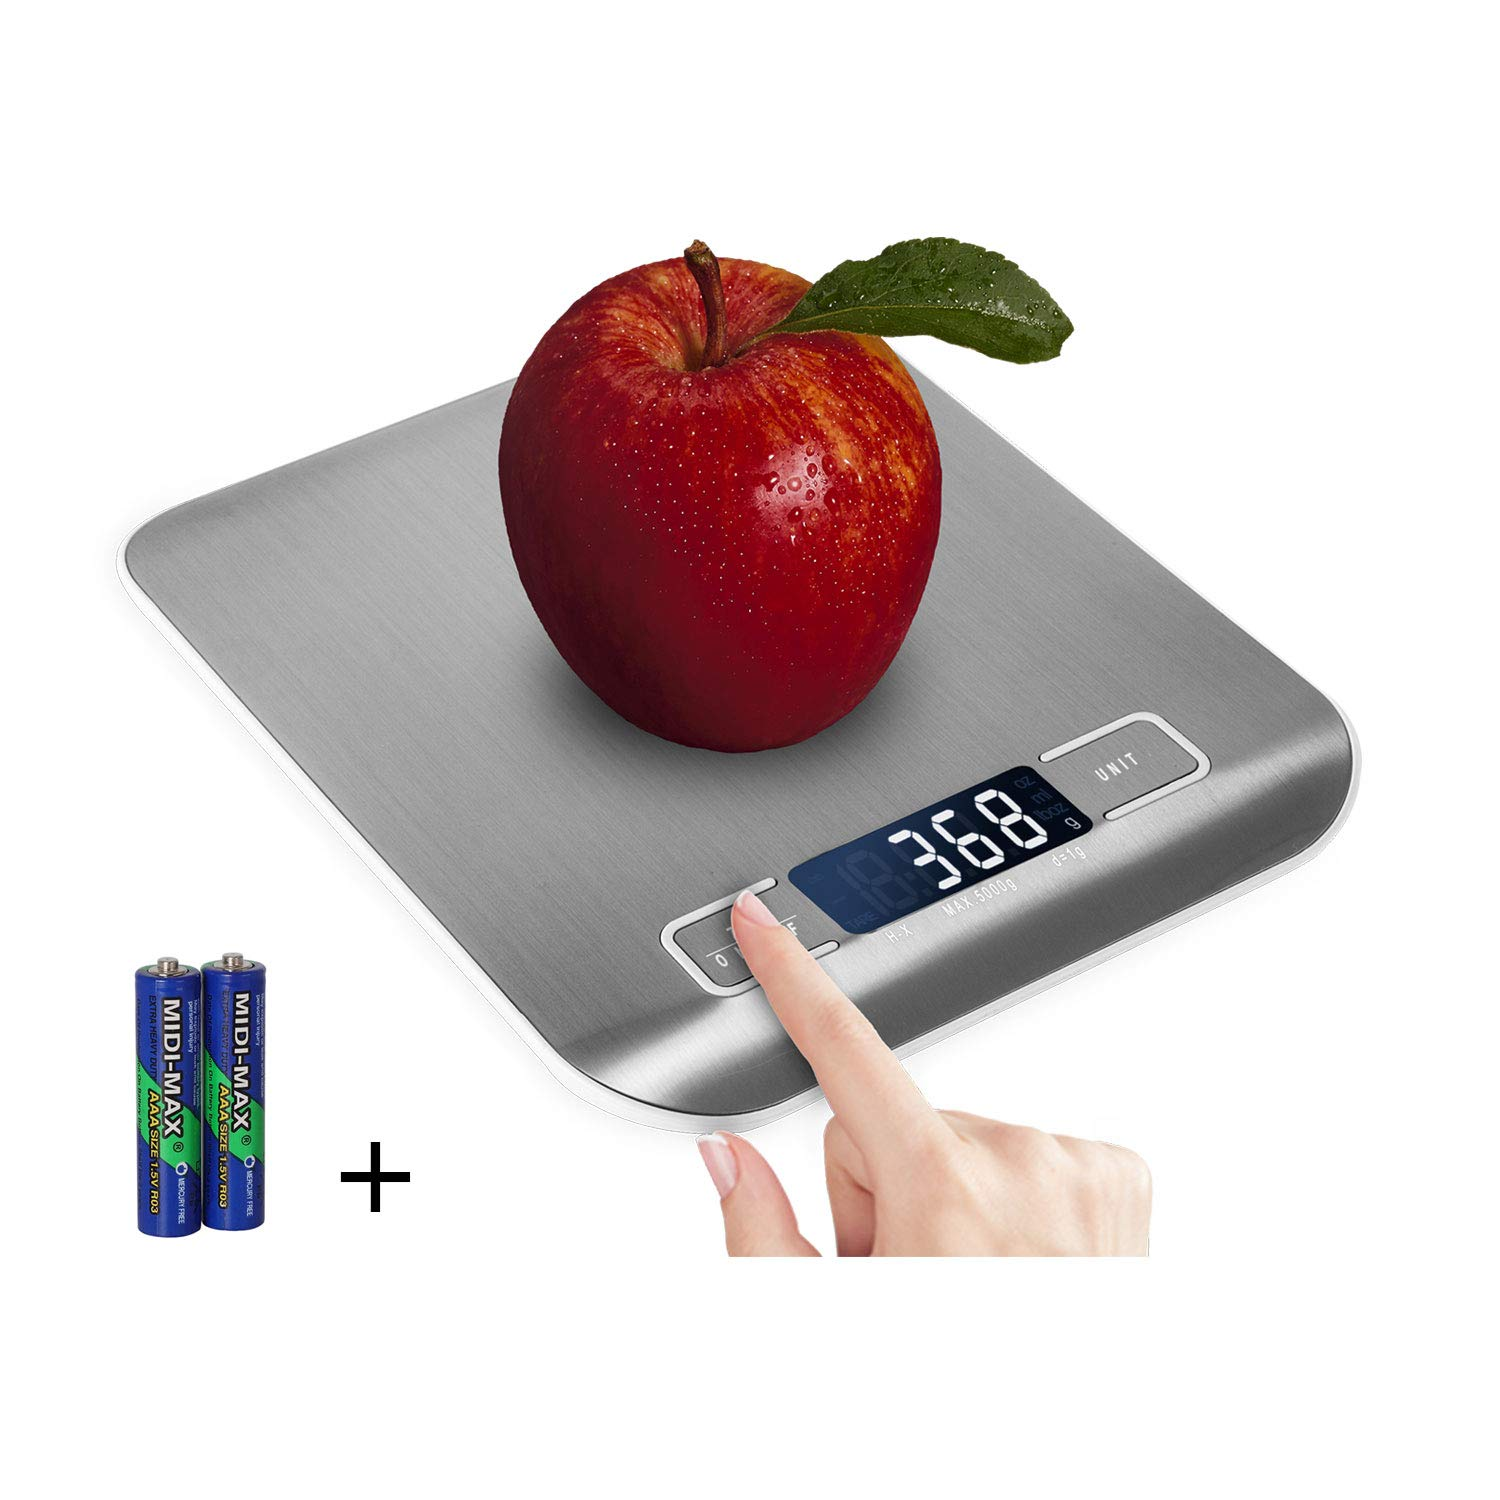 Domini Digital Kitchen Scale,Food Scale for Meat Baking Weighter,Unit Gram OZ lb Up 11 lb(1g-5KG) ,Silver Stainless Steel Anti-Fingerprint with Accuracy LCD Display for Cooking (include AAA Battery)